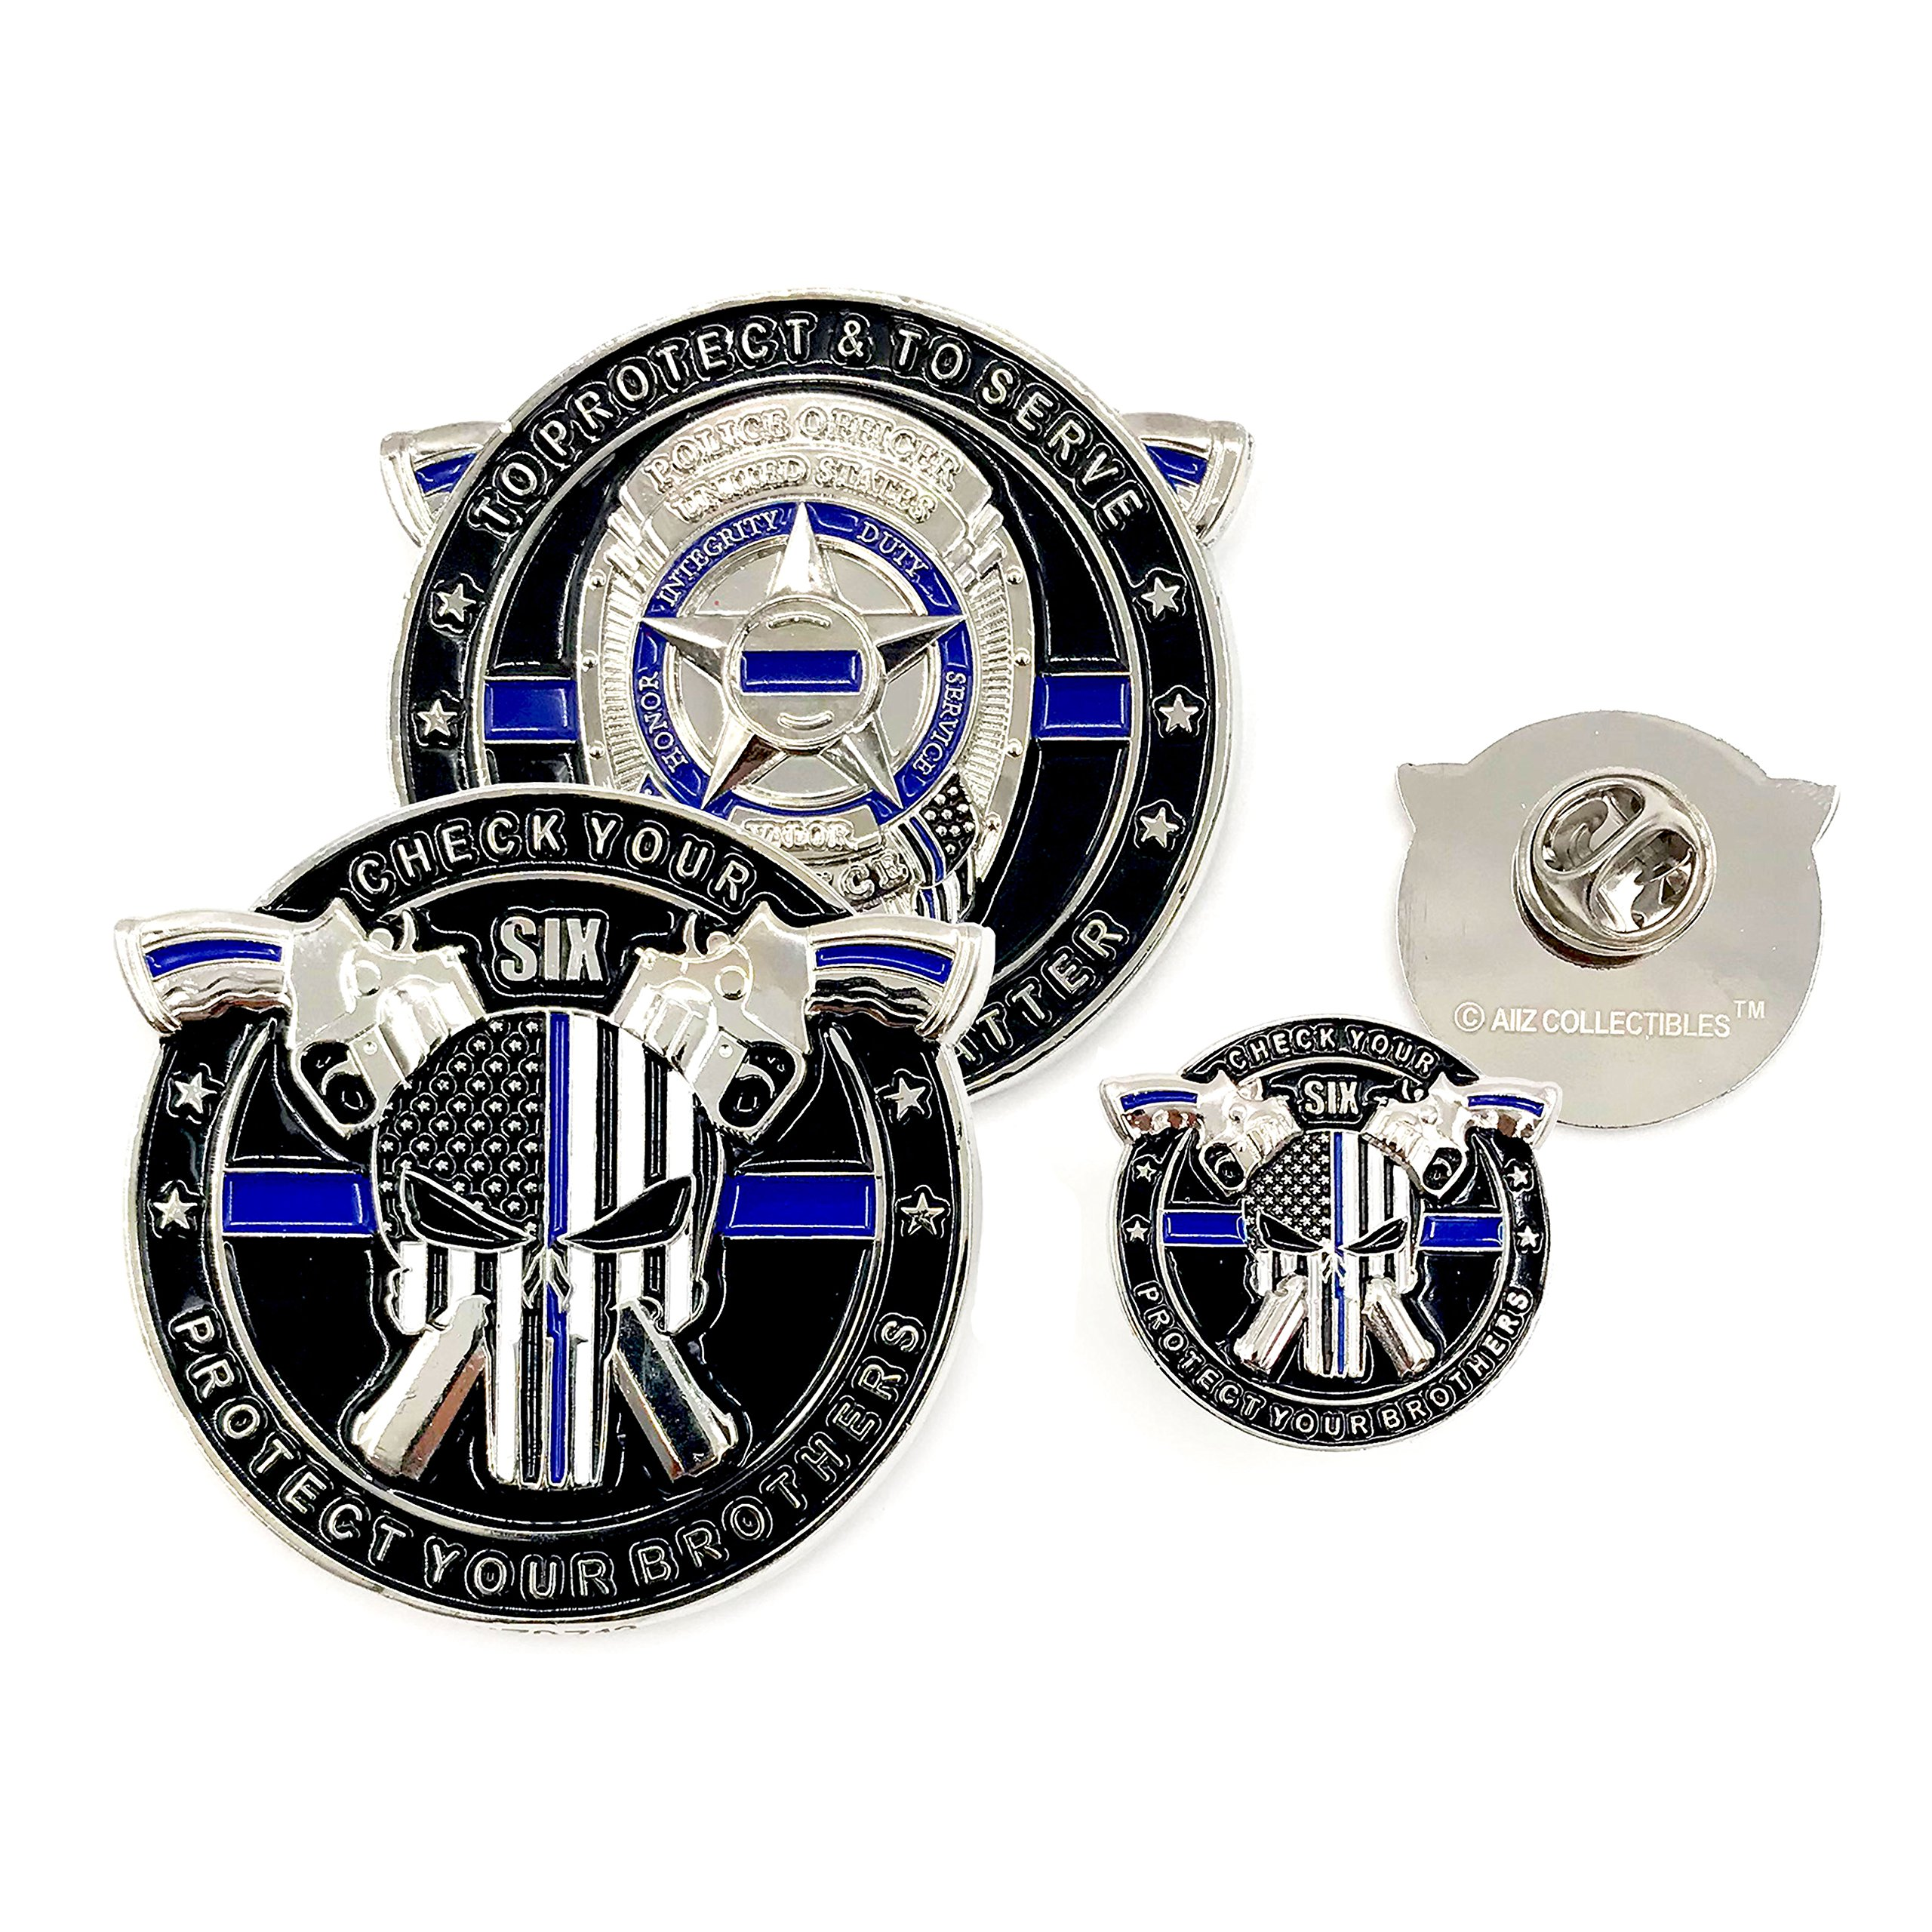 AIIZ Collectibles Police Coin & Pin - Punisher Thin Blue Line, Blue Lives Matter Law Enforcement Officers Military Police NYPD Challenge Coin with Unique Serial Numbers